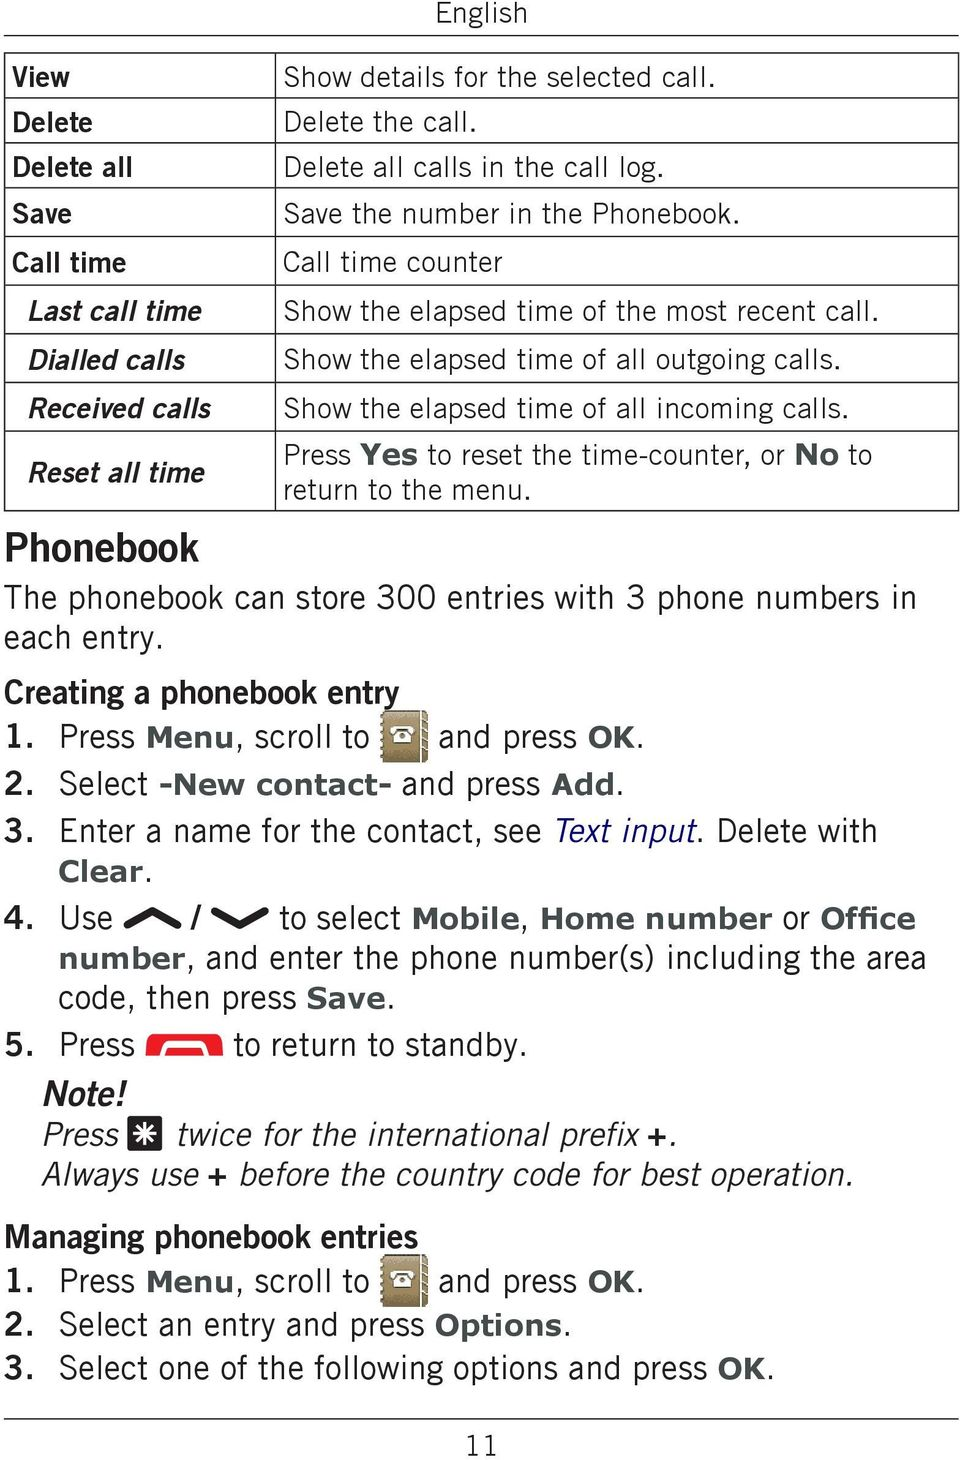 Press Yes to reset the time-counter, or No to return to the menu. Phonebook The phonebook can store 300 entries with 3 phone numbers in each entry. Creating a phonebook entry 2.